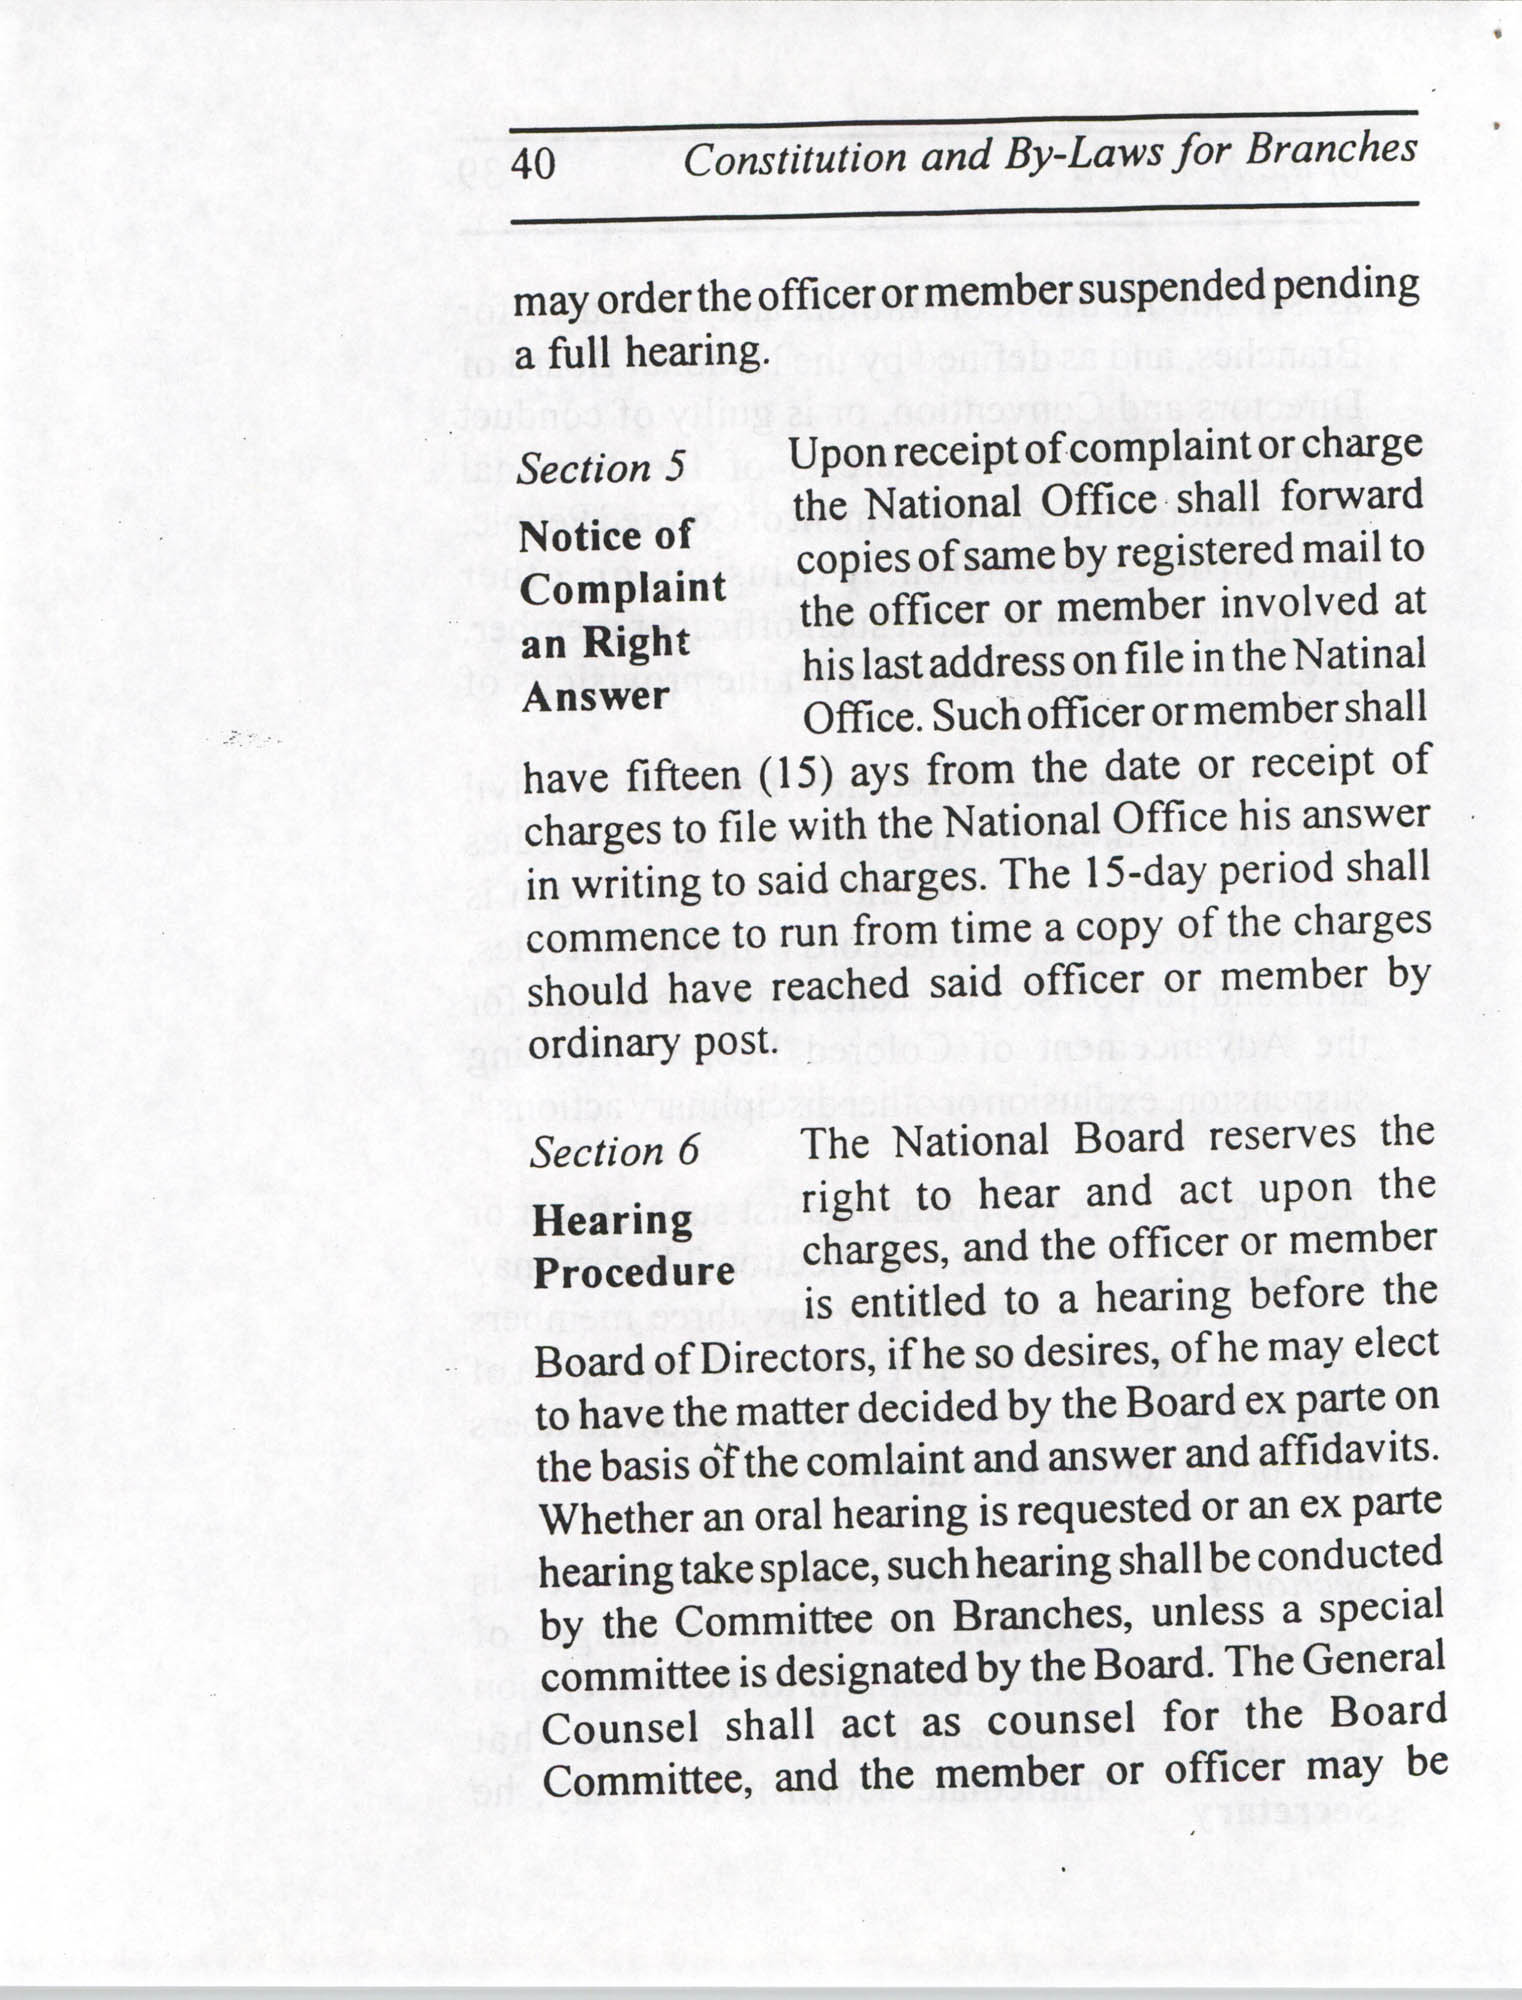 Constitution and By-Laws for Branches of the NAACP, July 1994, Page 40